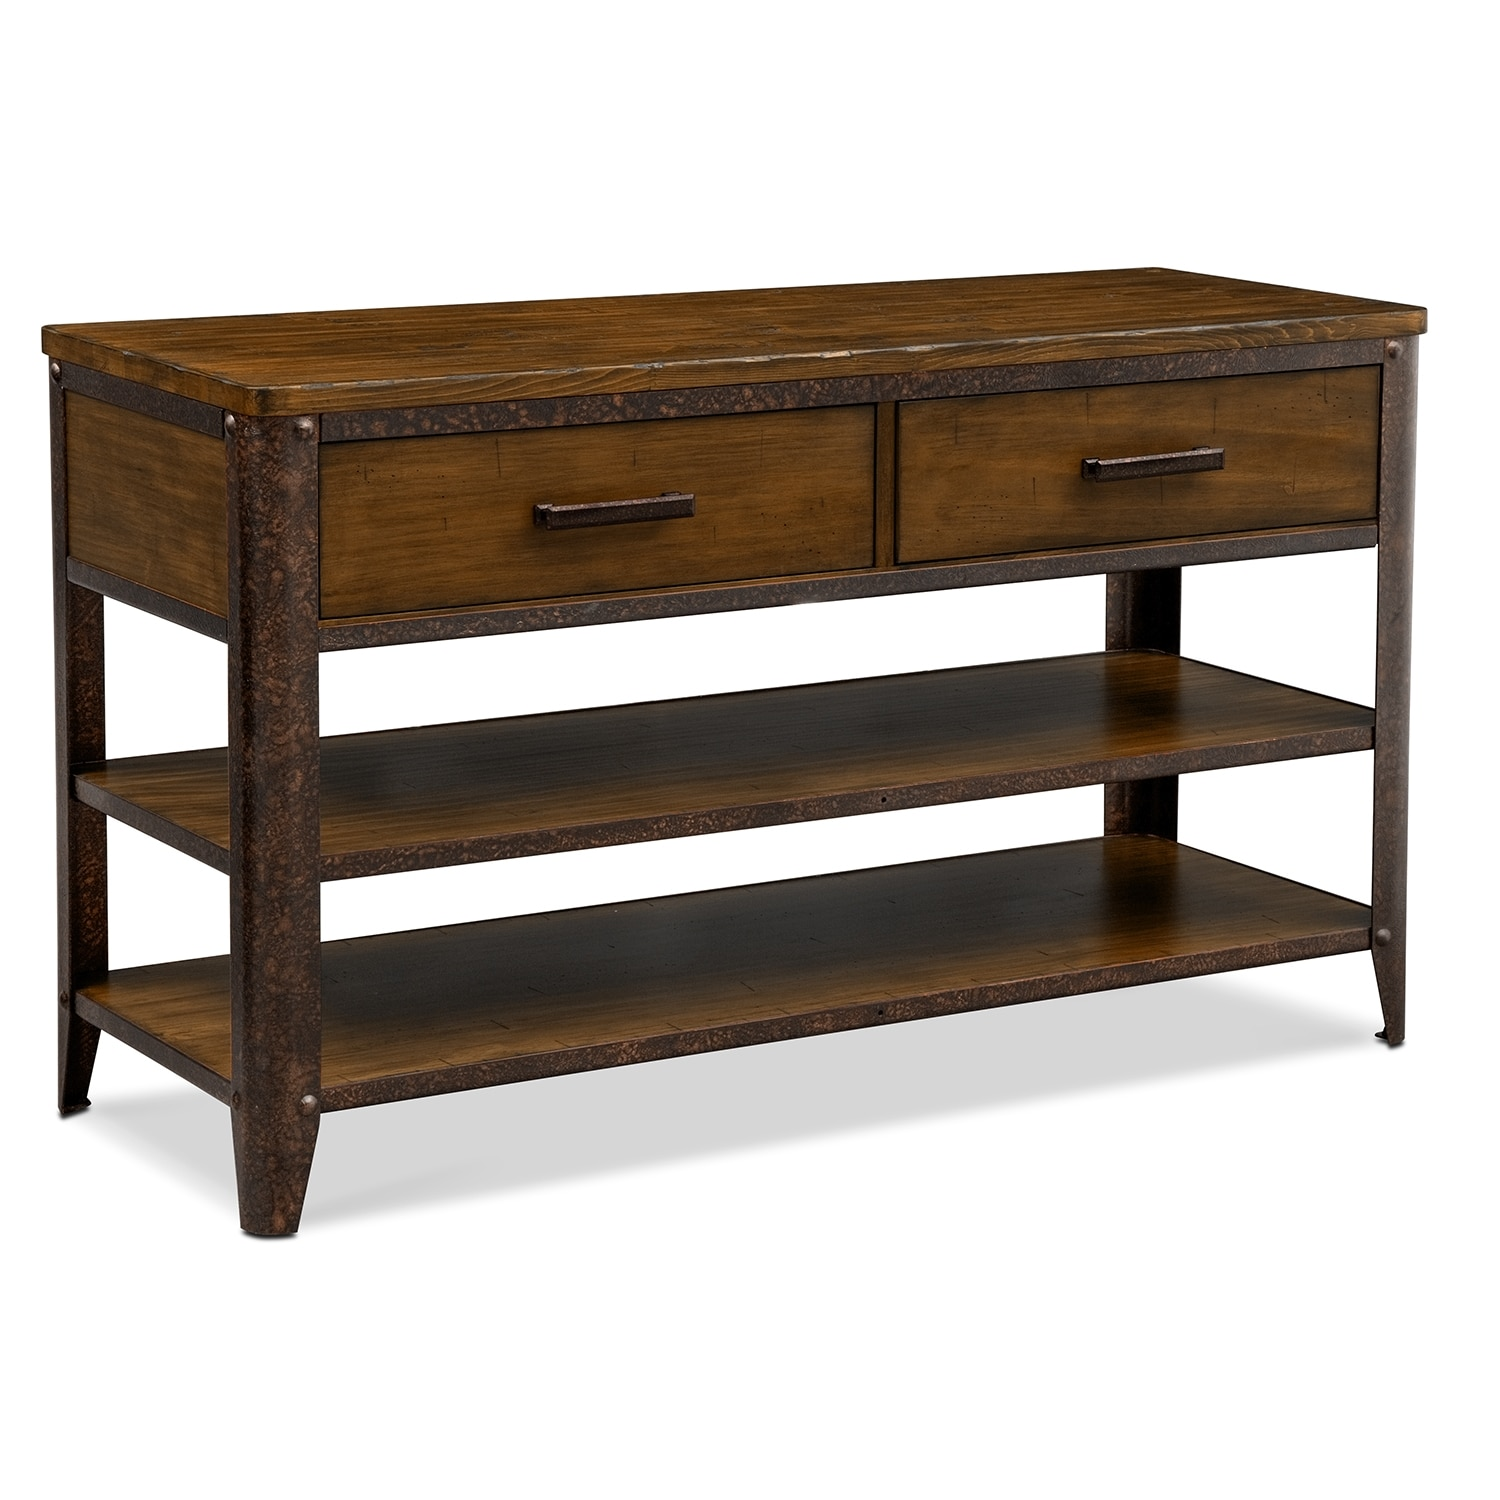 Shortline Sofa Table - Distressed Pine